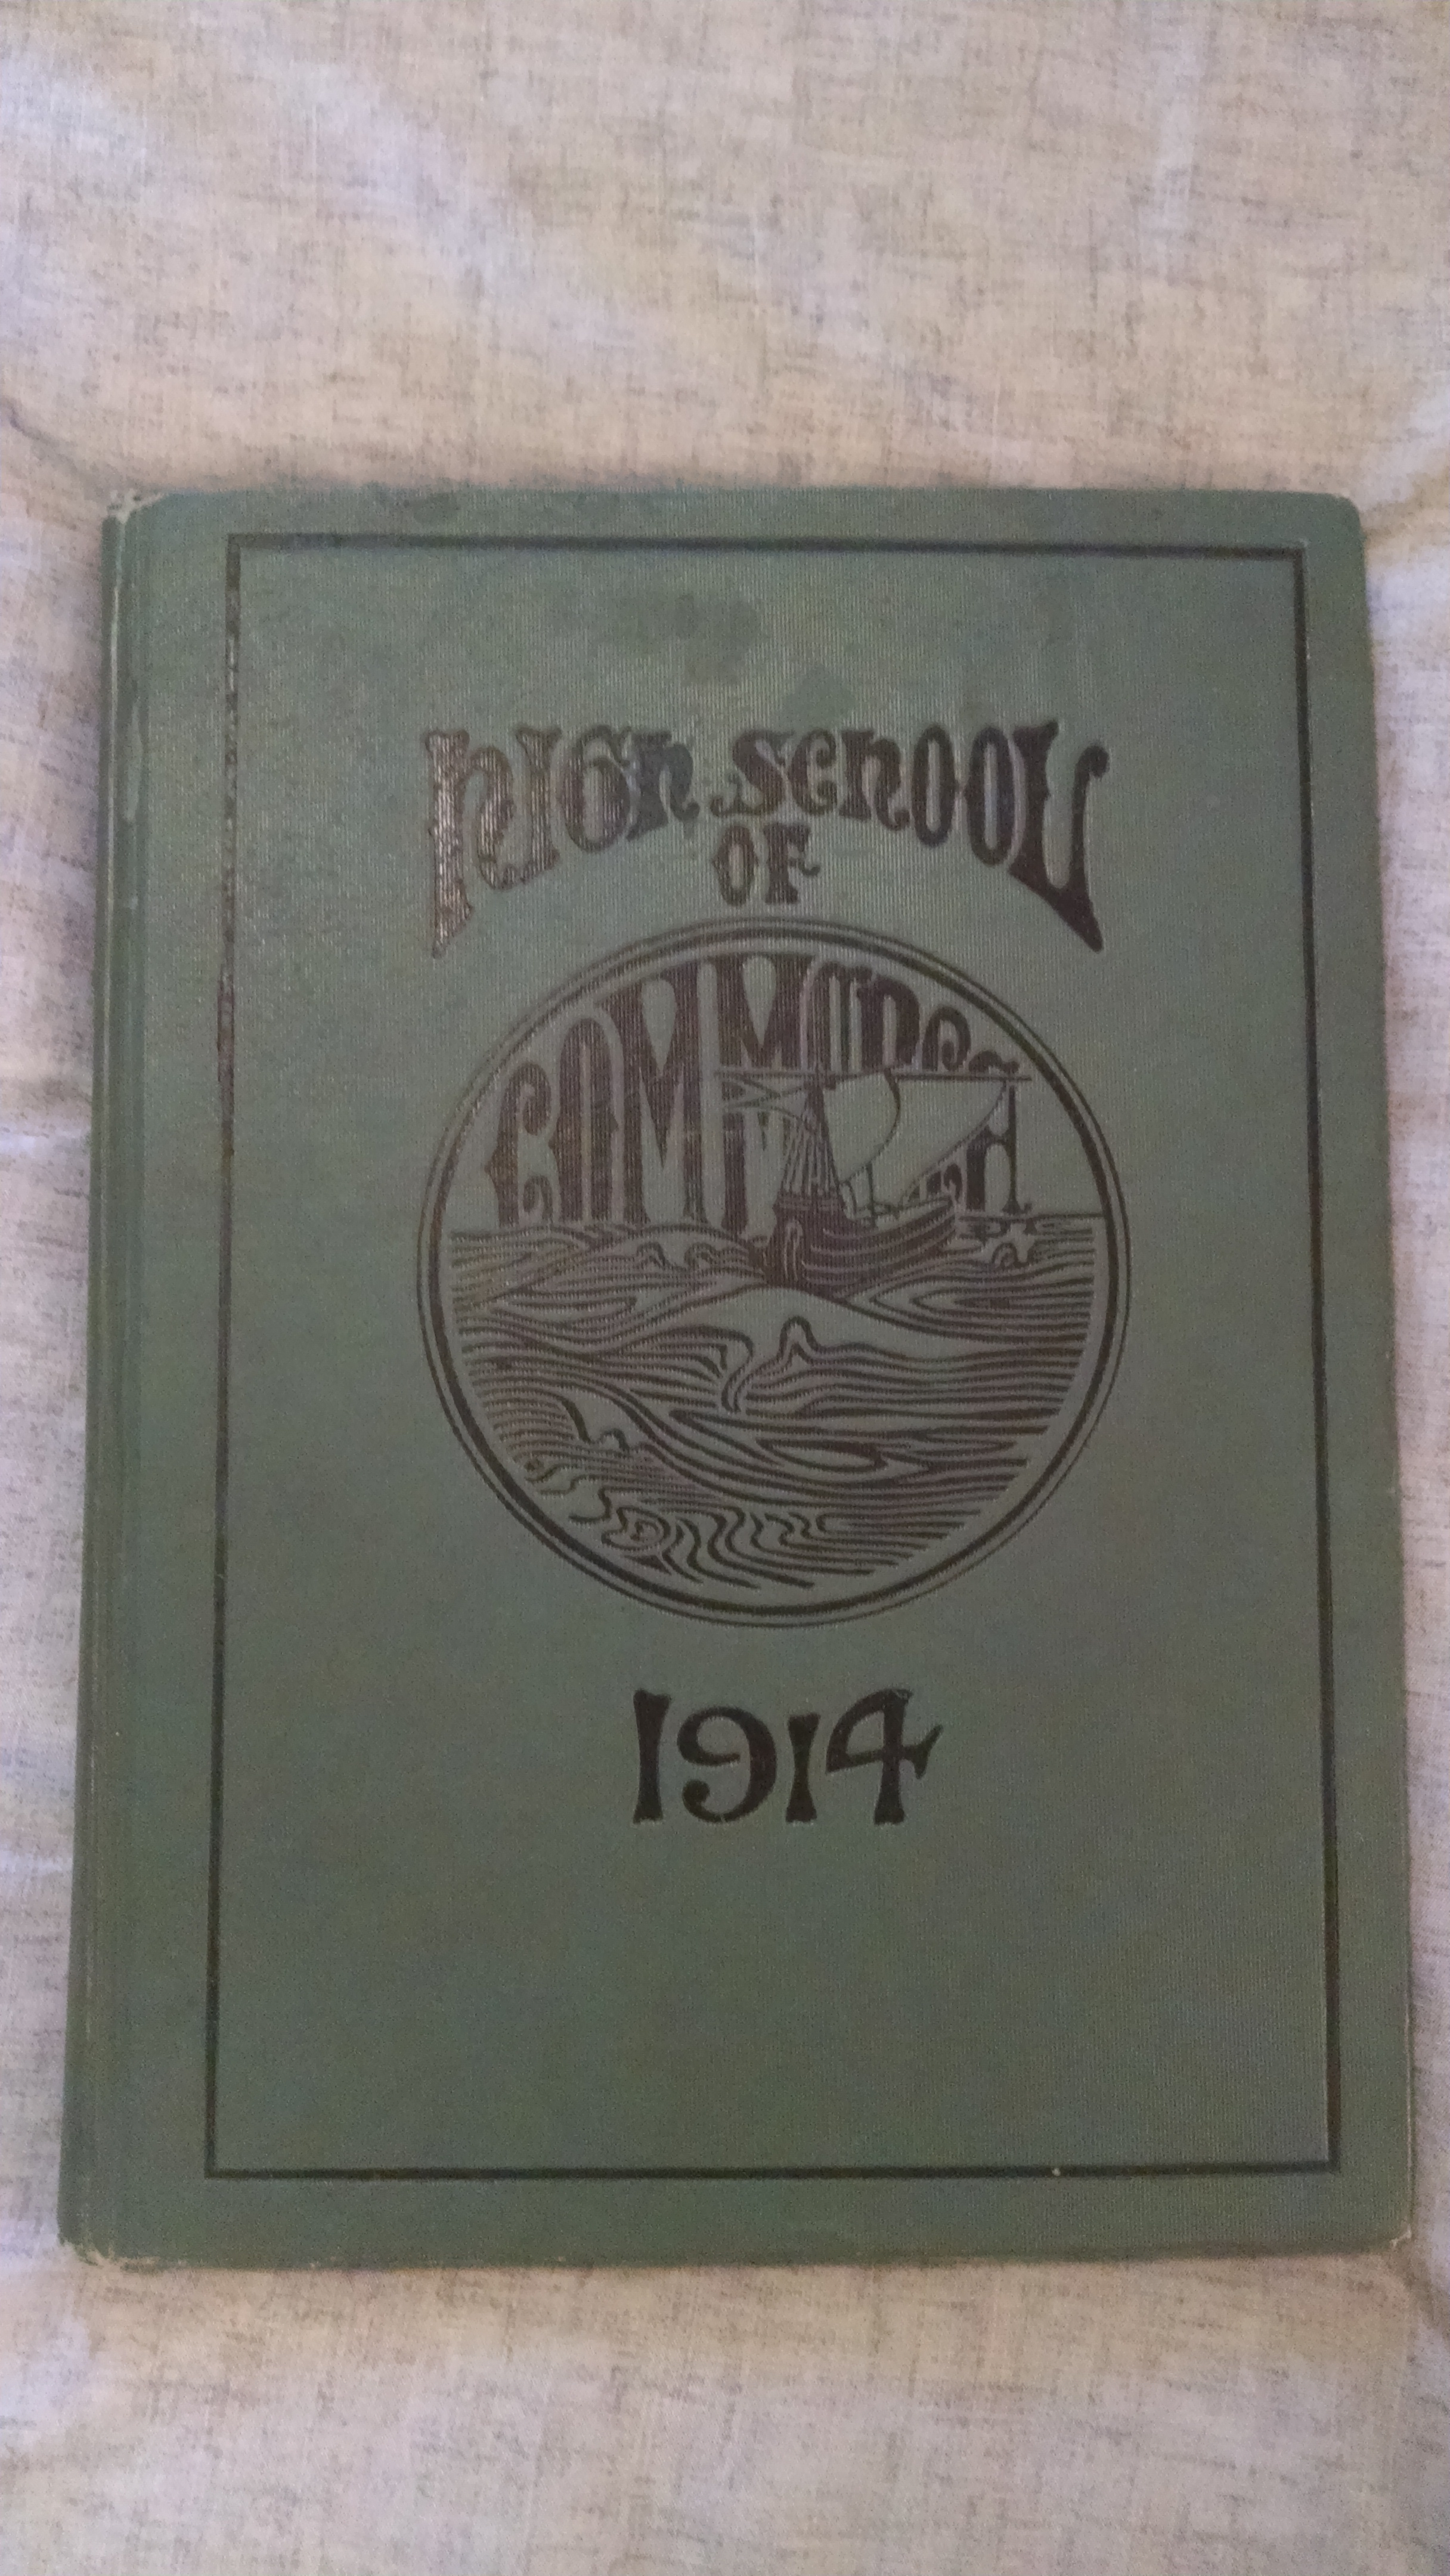 Image for HIGH SCHOOL OF COMMERCE 1914